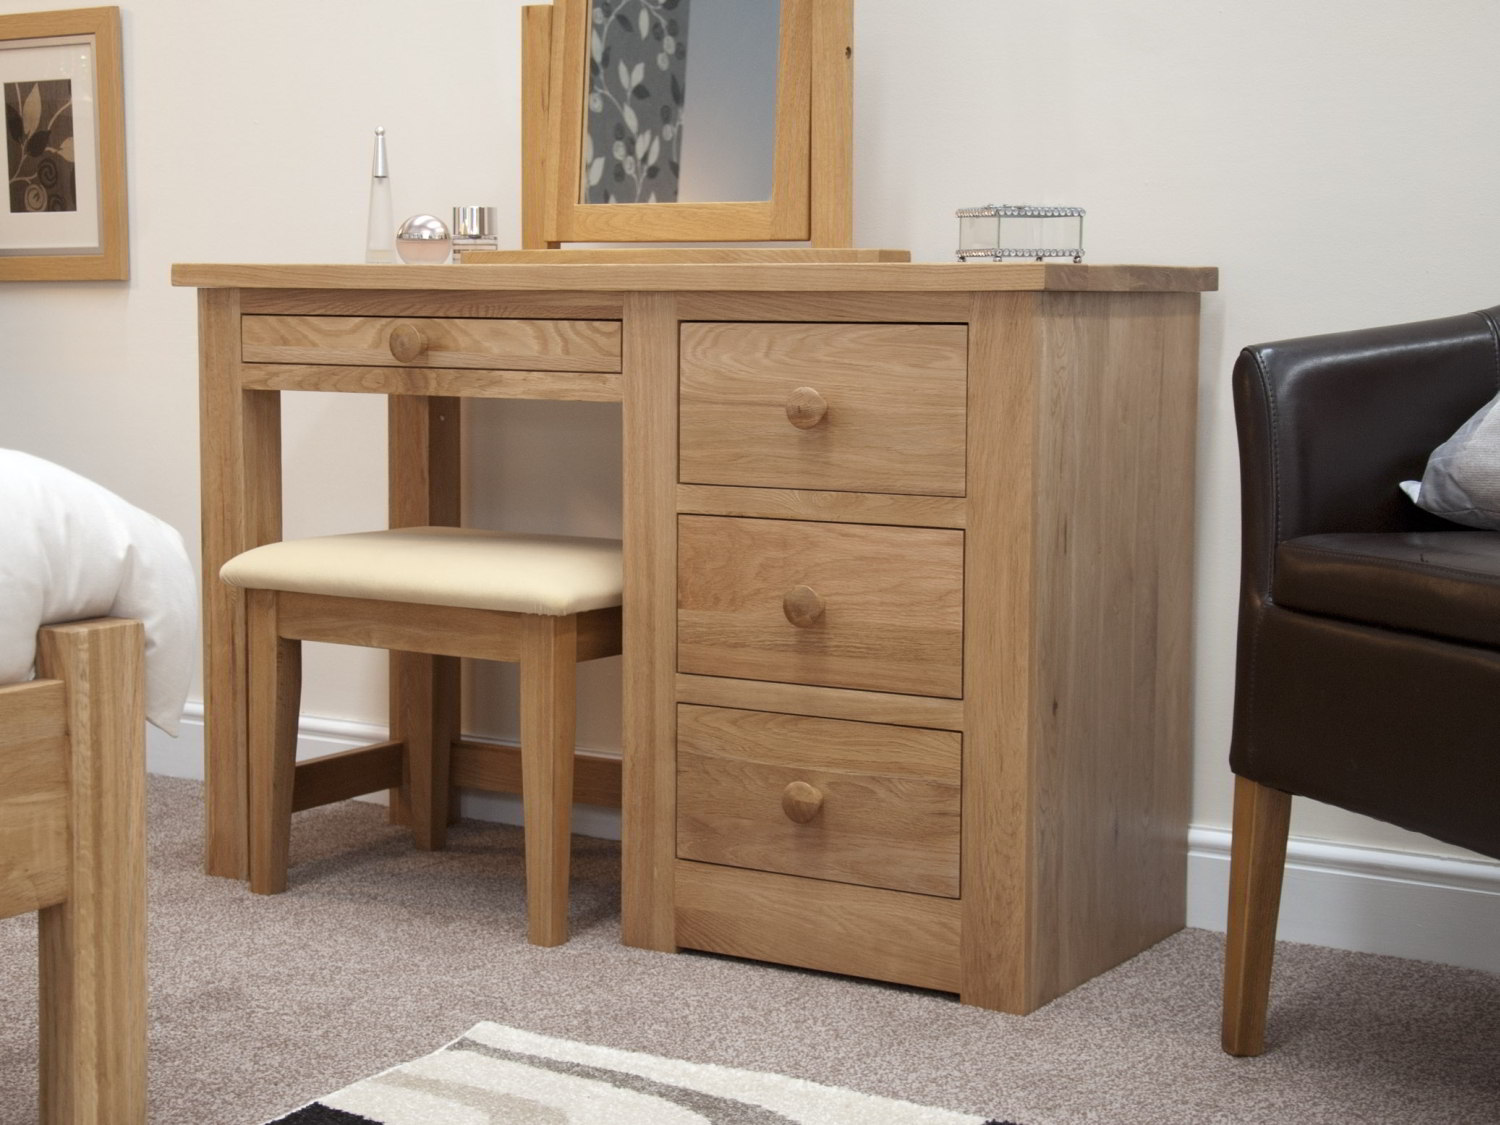 dressing room furniture. Kingston Solid Modern Oak Bedroom Furniture Dressing Table With Stool Room